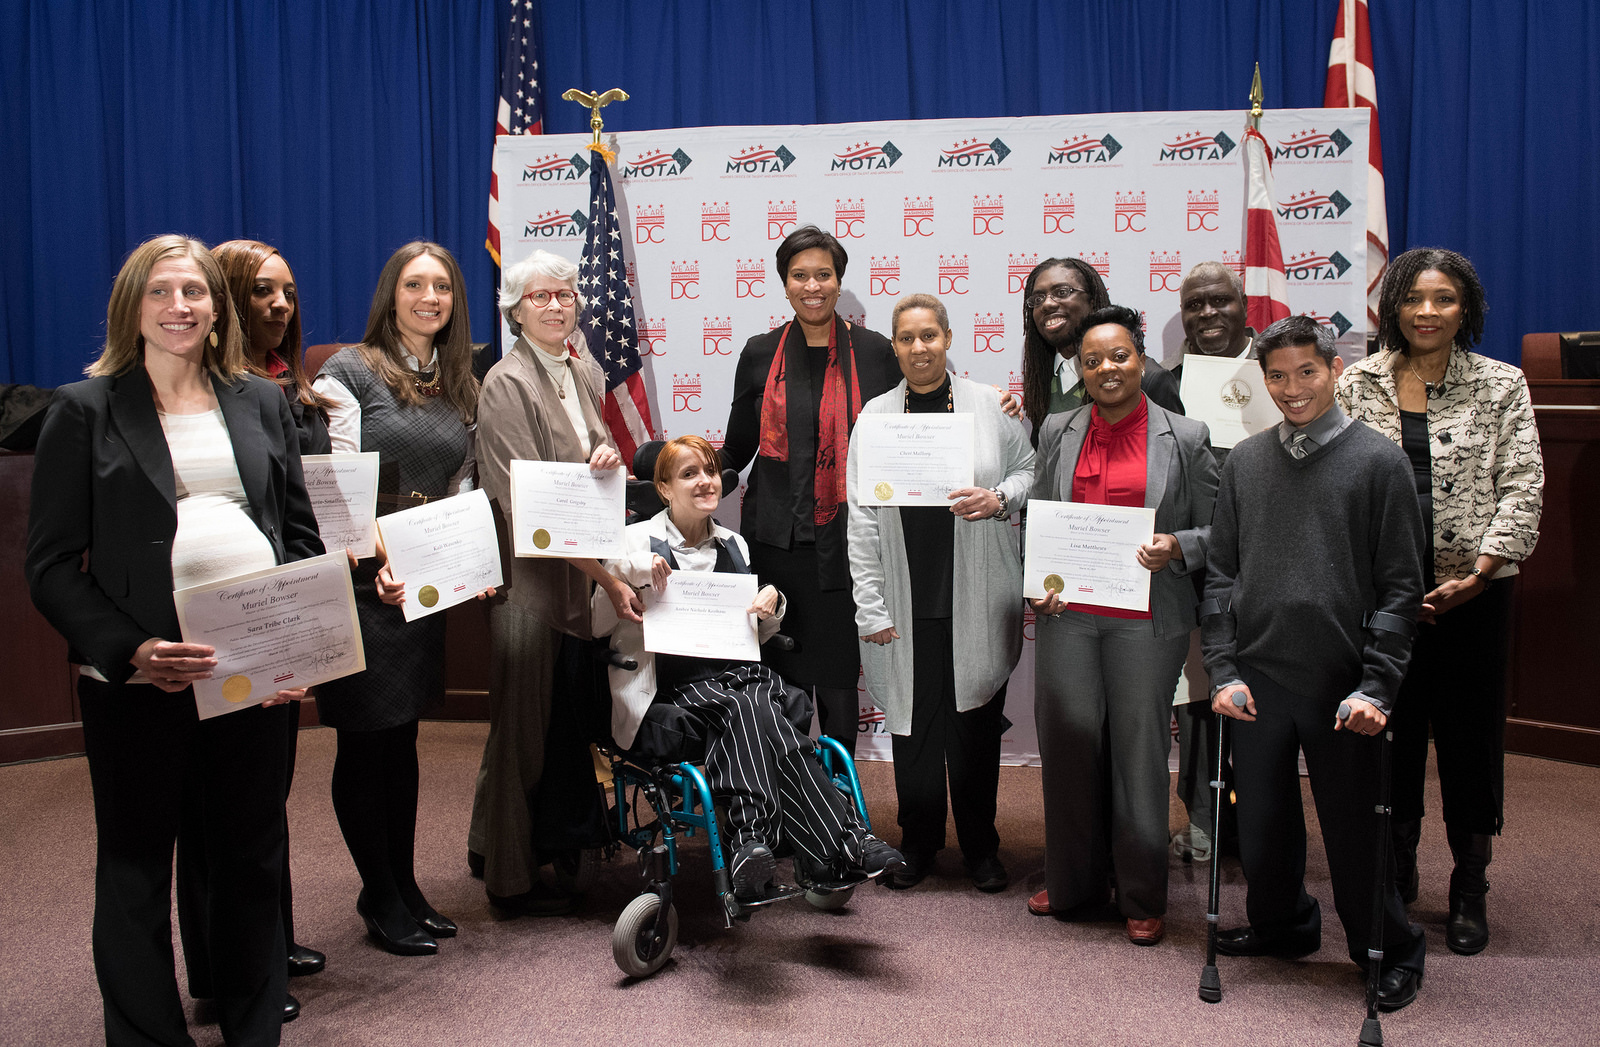 An image with several members of the Developmental Disabilities Council with Mayor Muriel Bowser after they were sworn in.